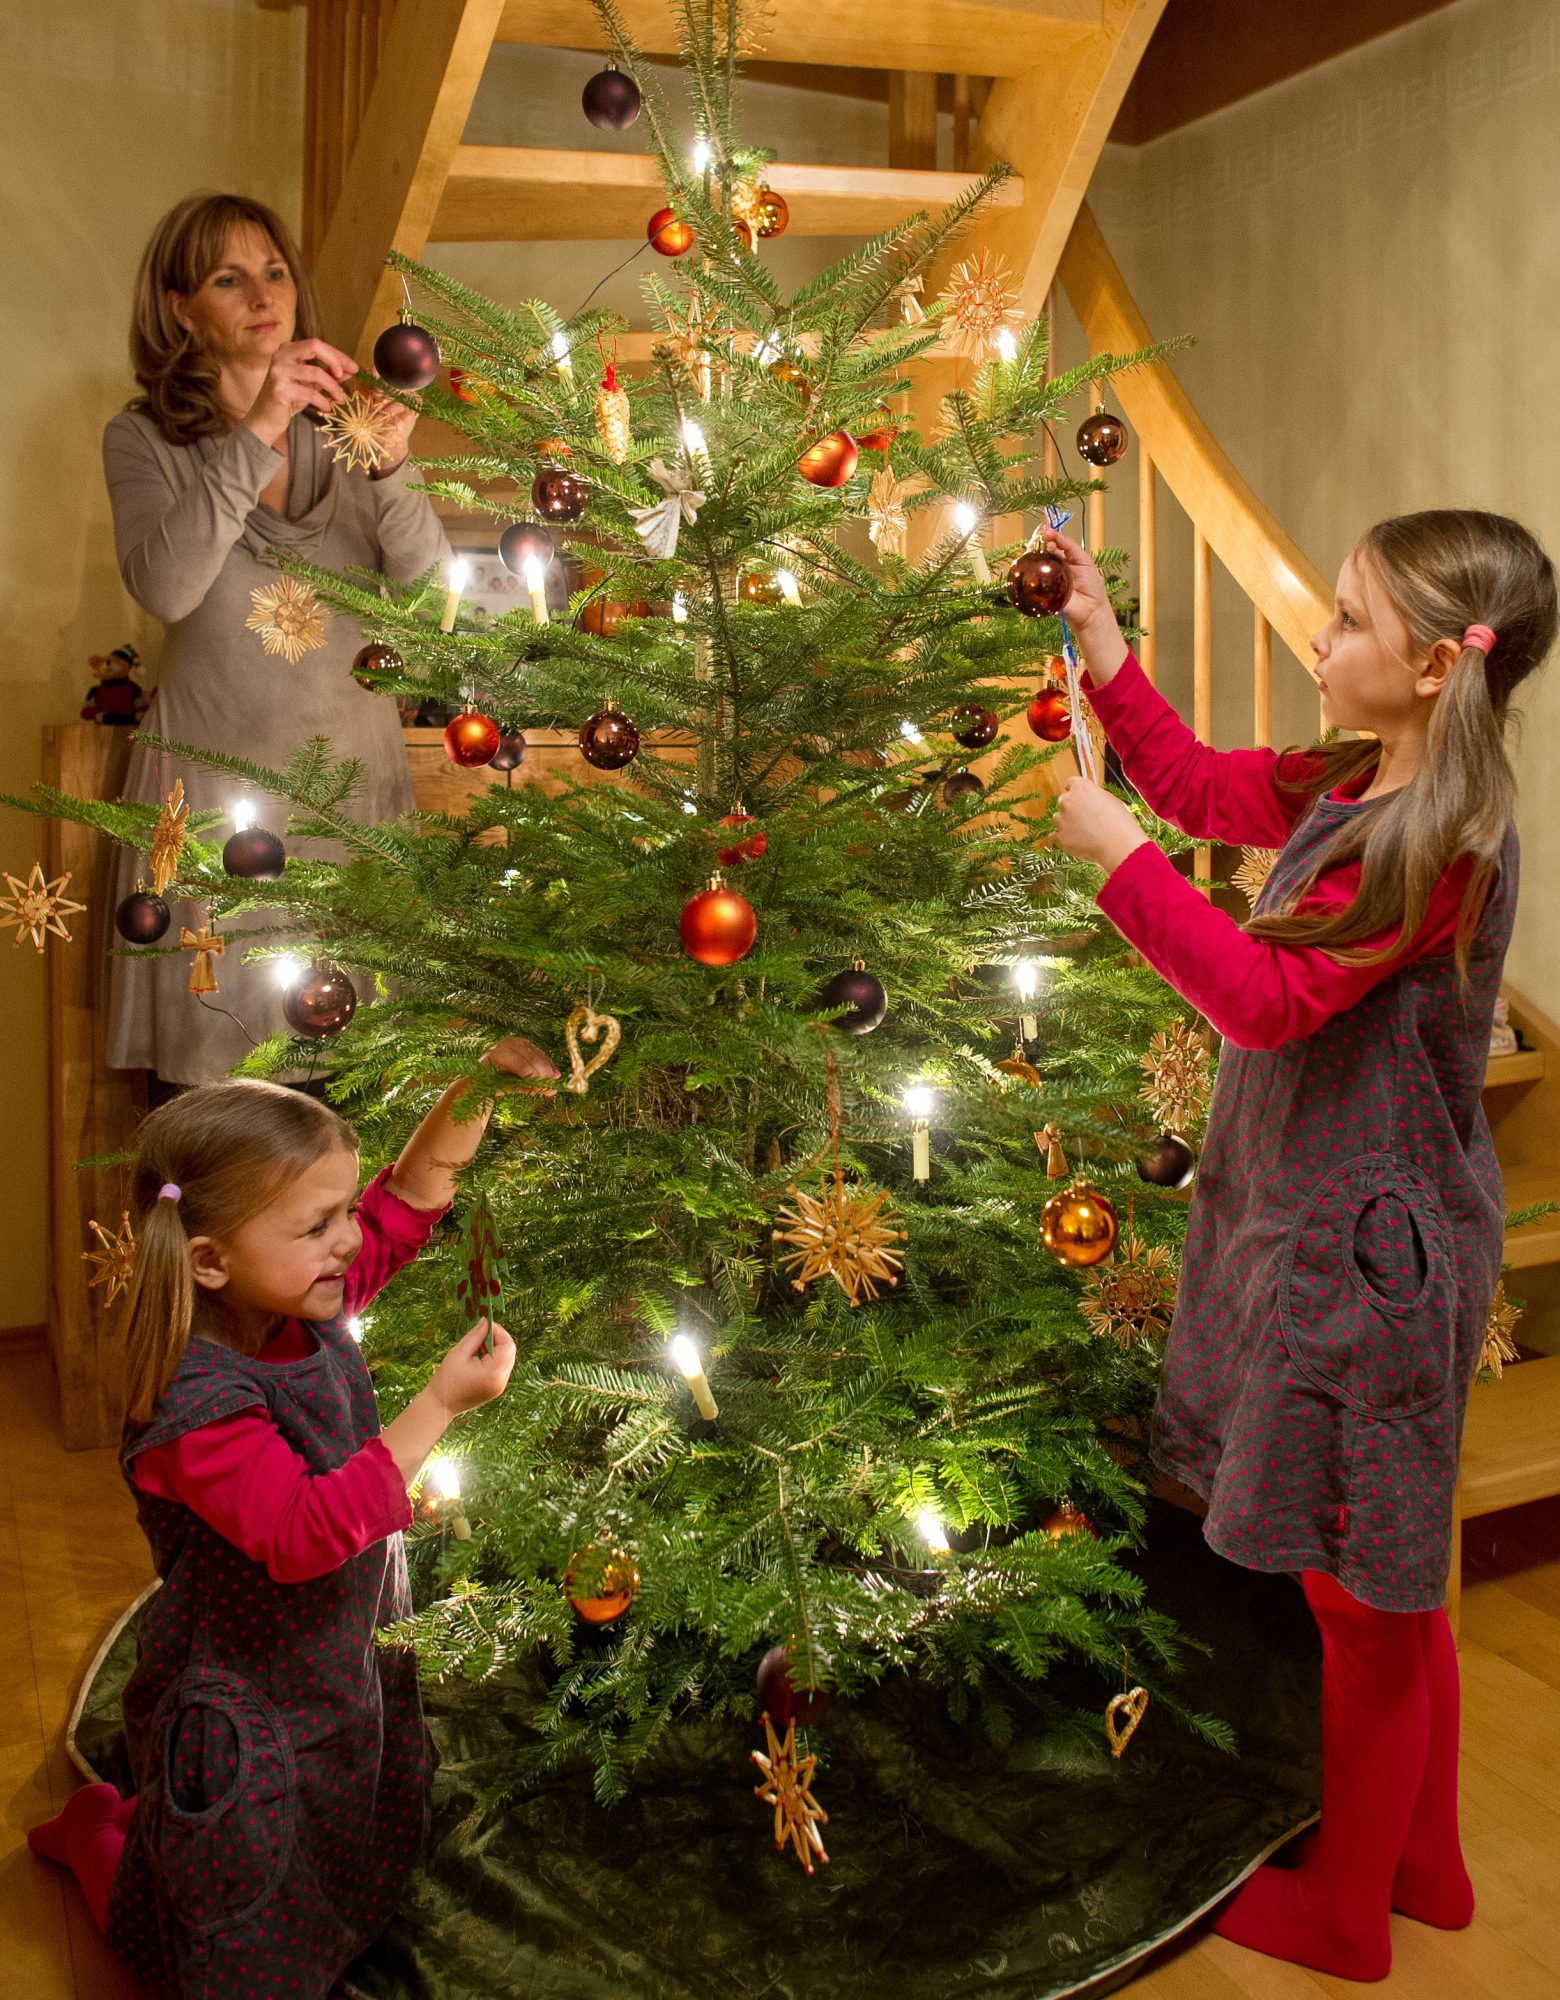 mother and daughters decorate the Christmas tree